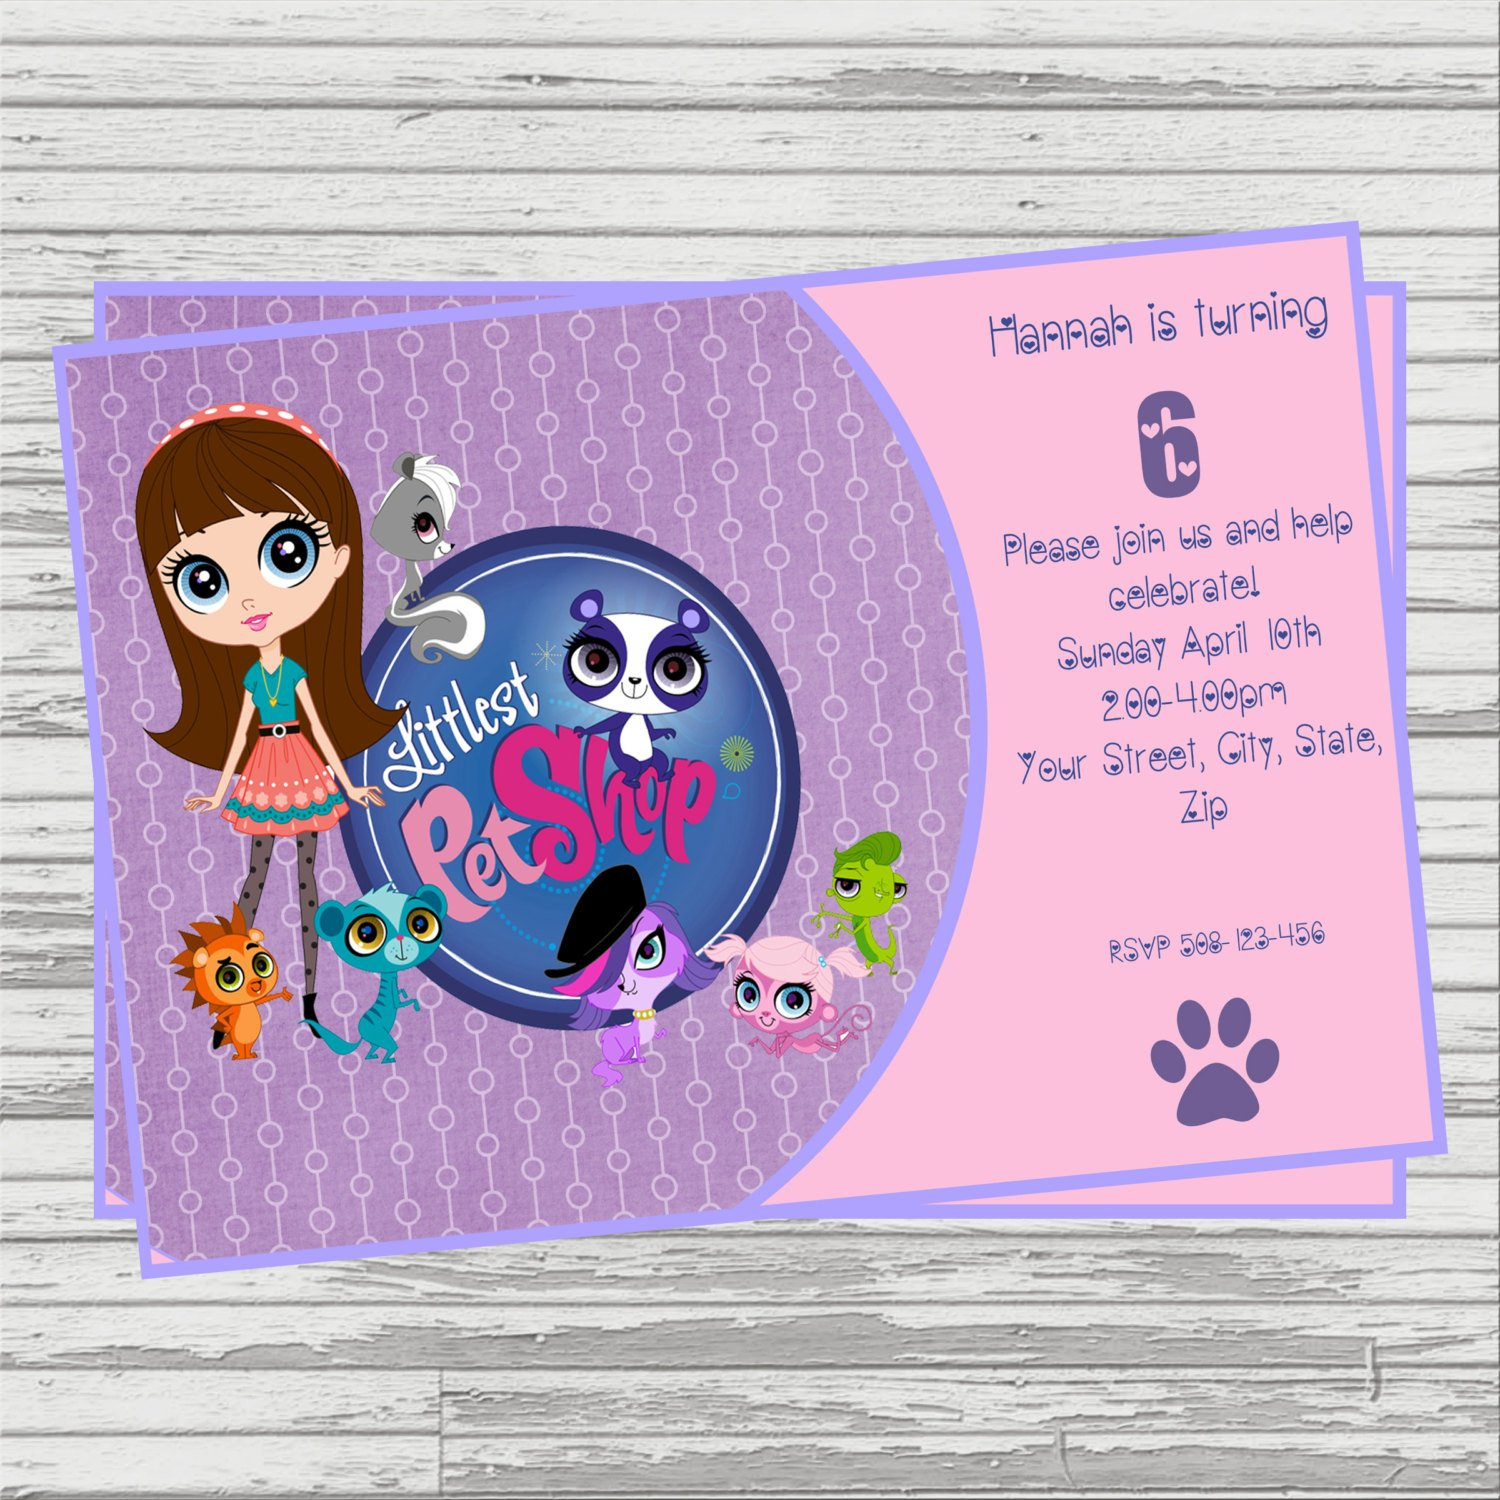 Littlest Pet Shop Digital Birthday Invitation. | Etsy - Littlest Pet Shop Invitations Printable Free